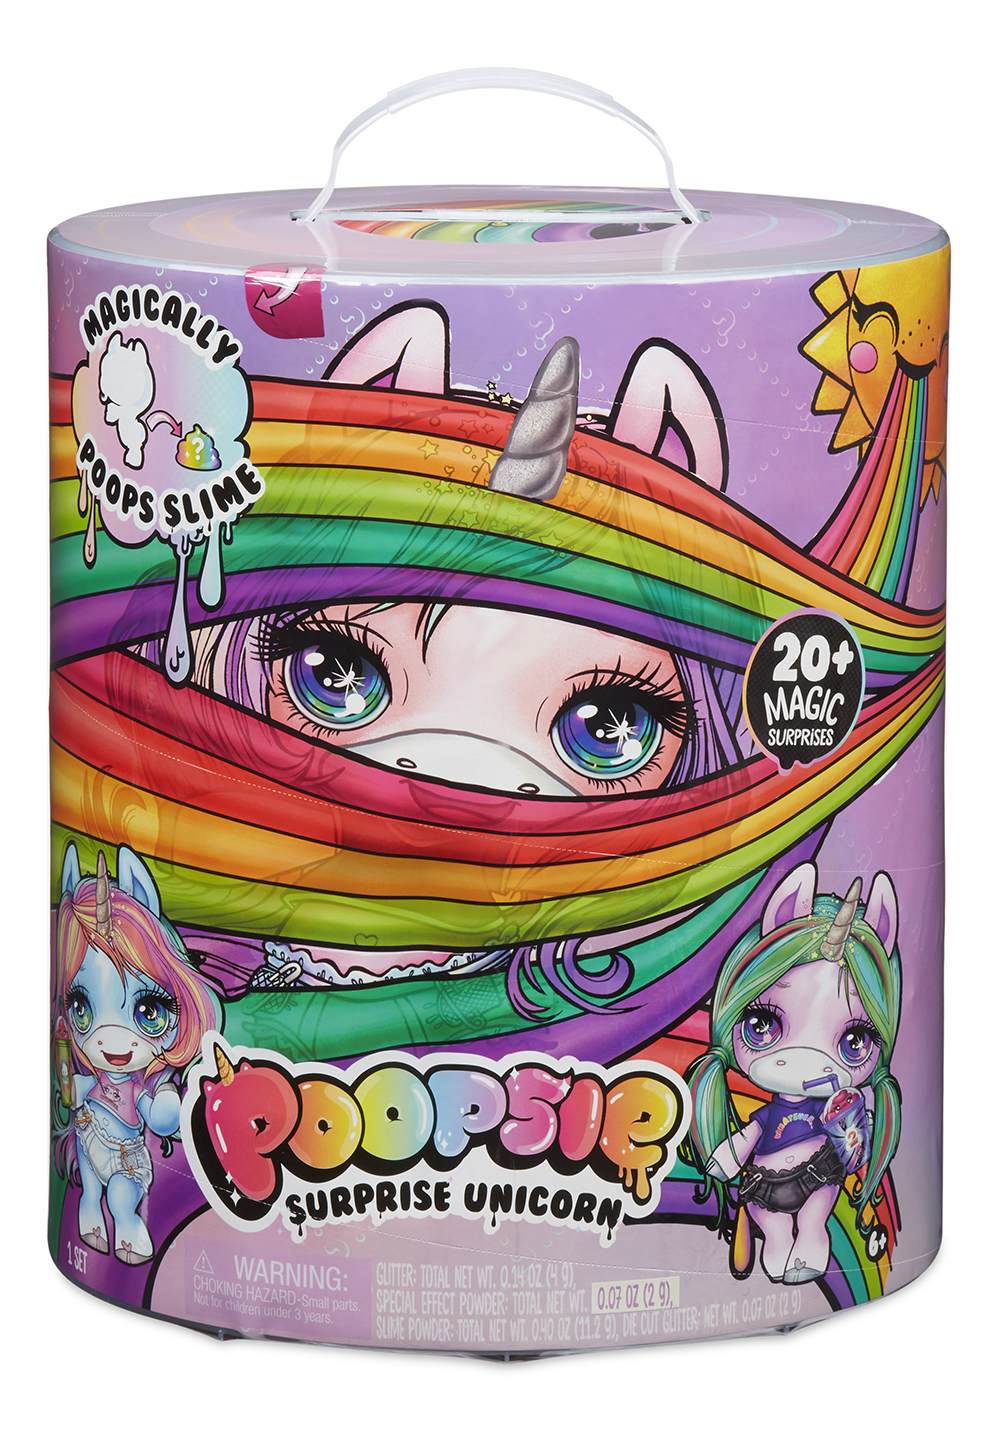 Poopsie - Surprise Unicorn assorties